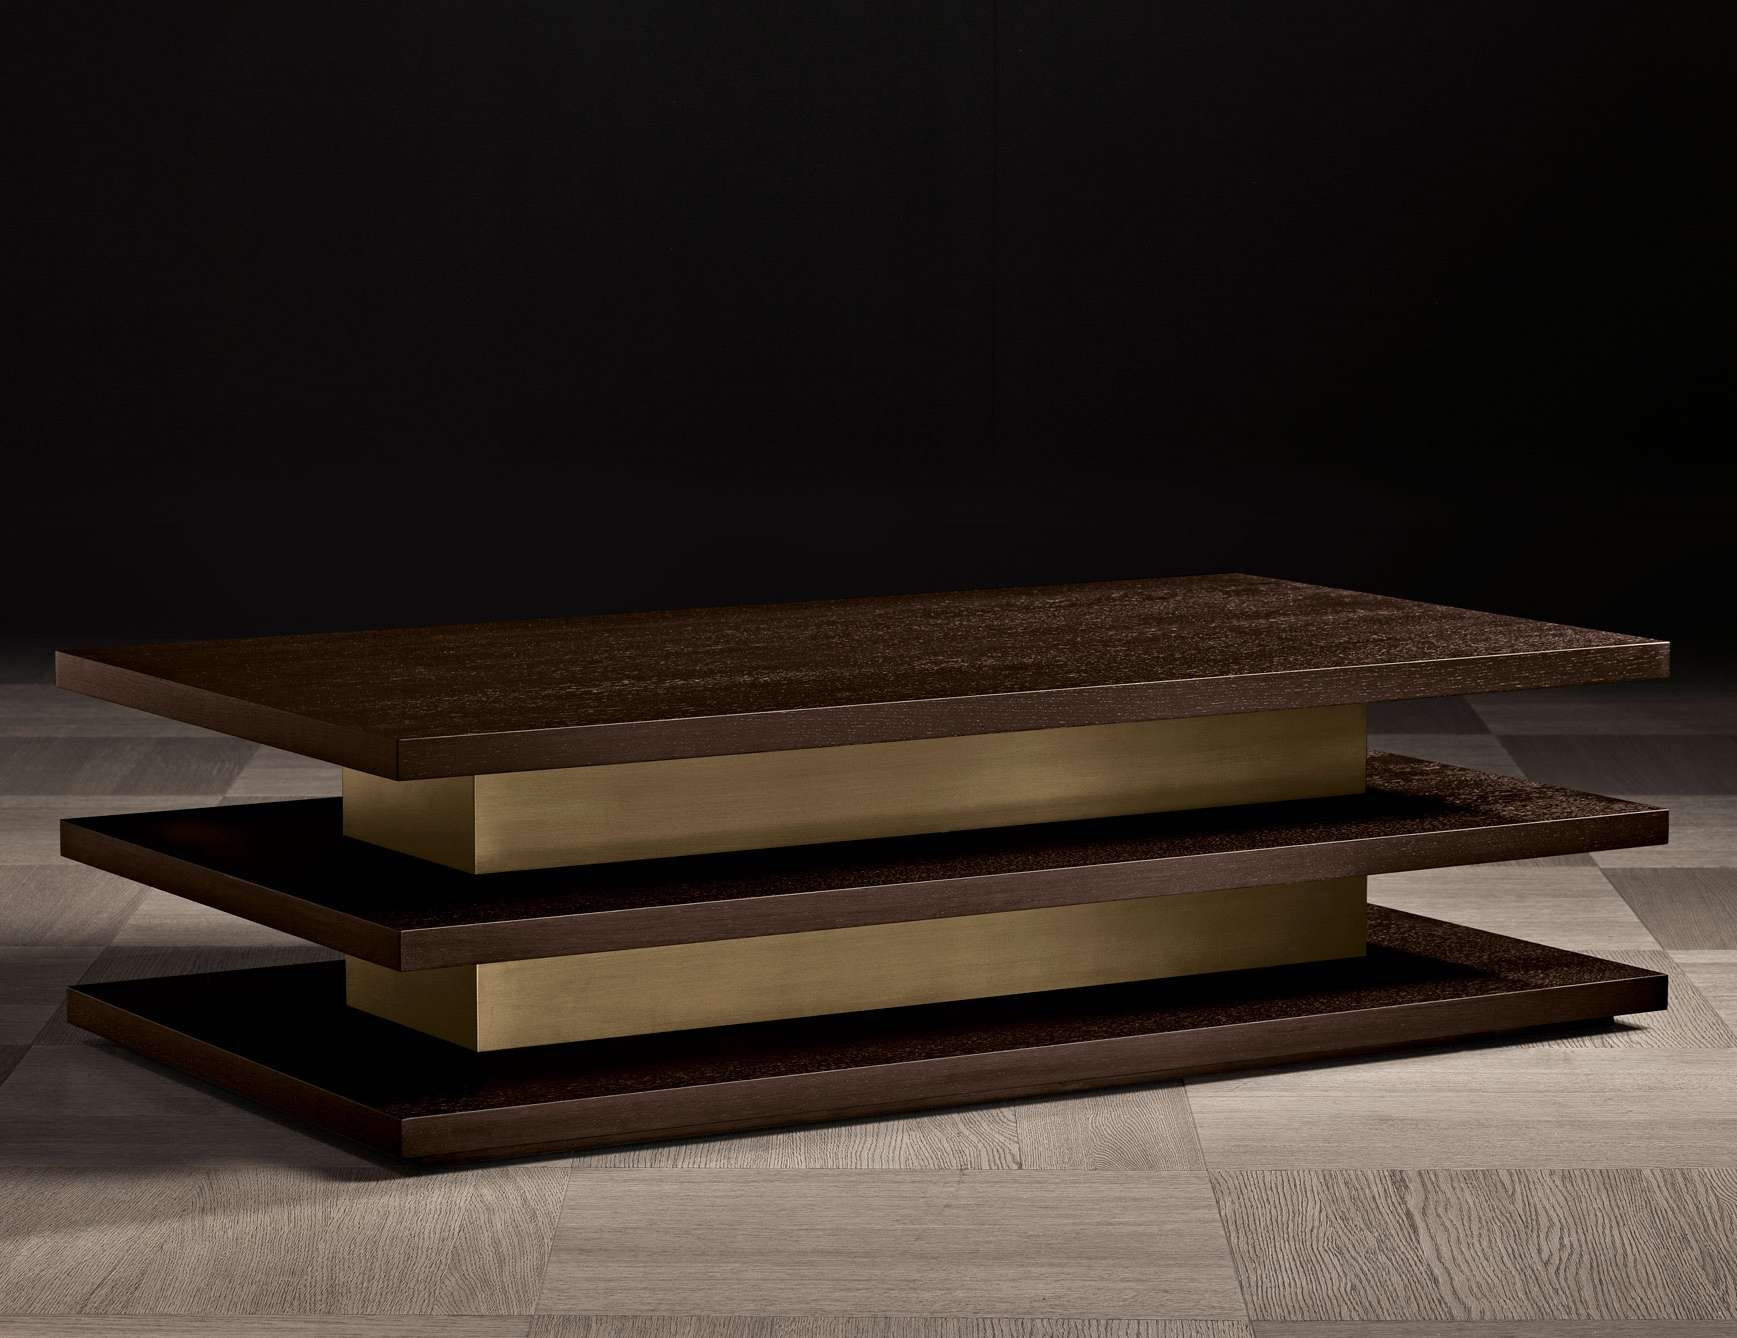 Nella Vetrina Ilo Luxury Italian Coffee Table In Mocha Oak Wood Pertaining To Trendy Italian Coffee Tables (View 4 of 20)